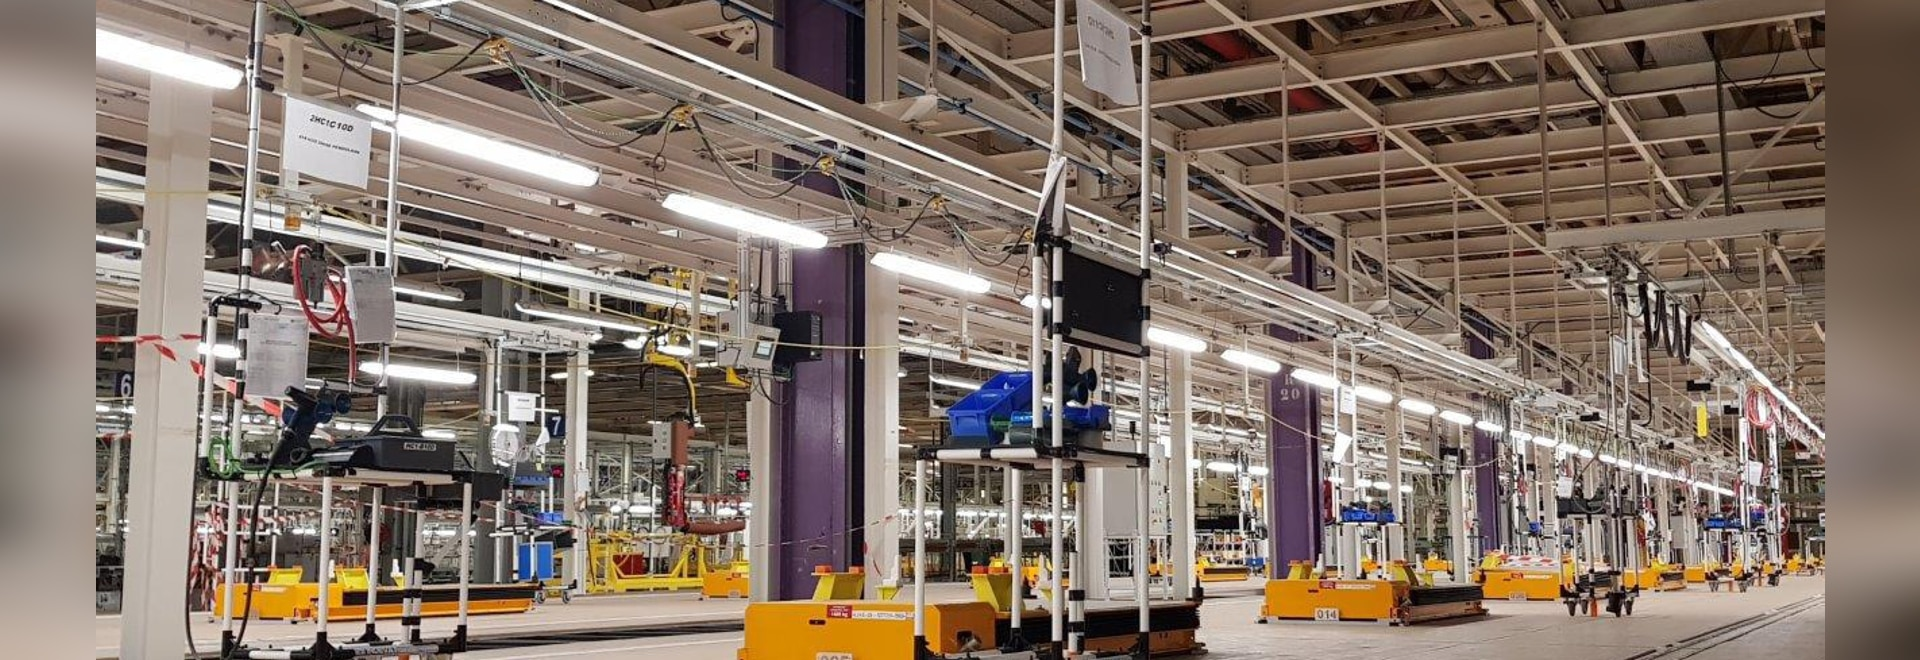 INDEVA Lean System® improves Lean Manufacturing in Automotive Industry